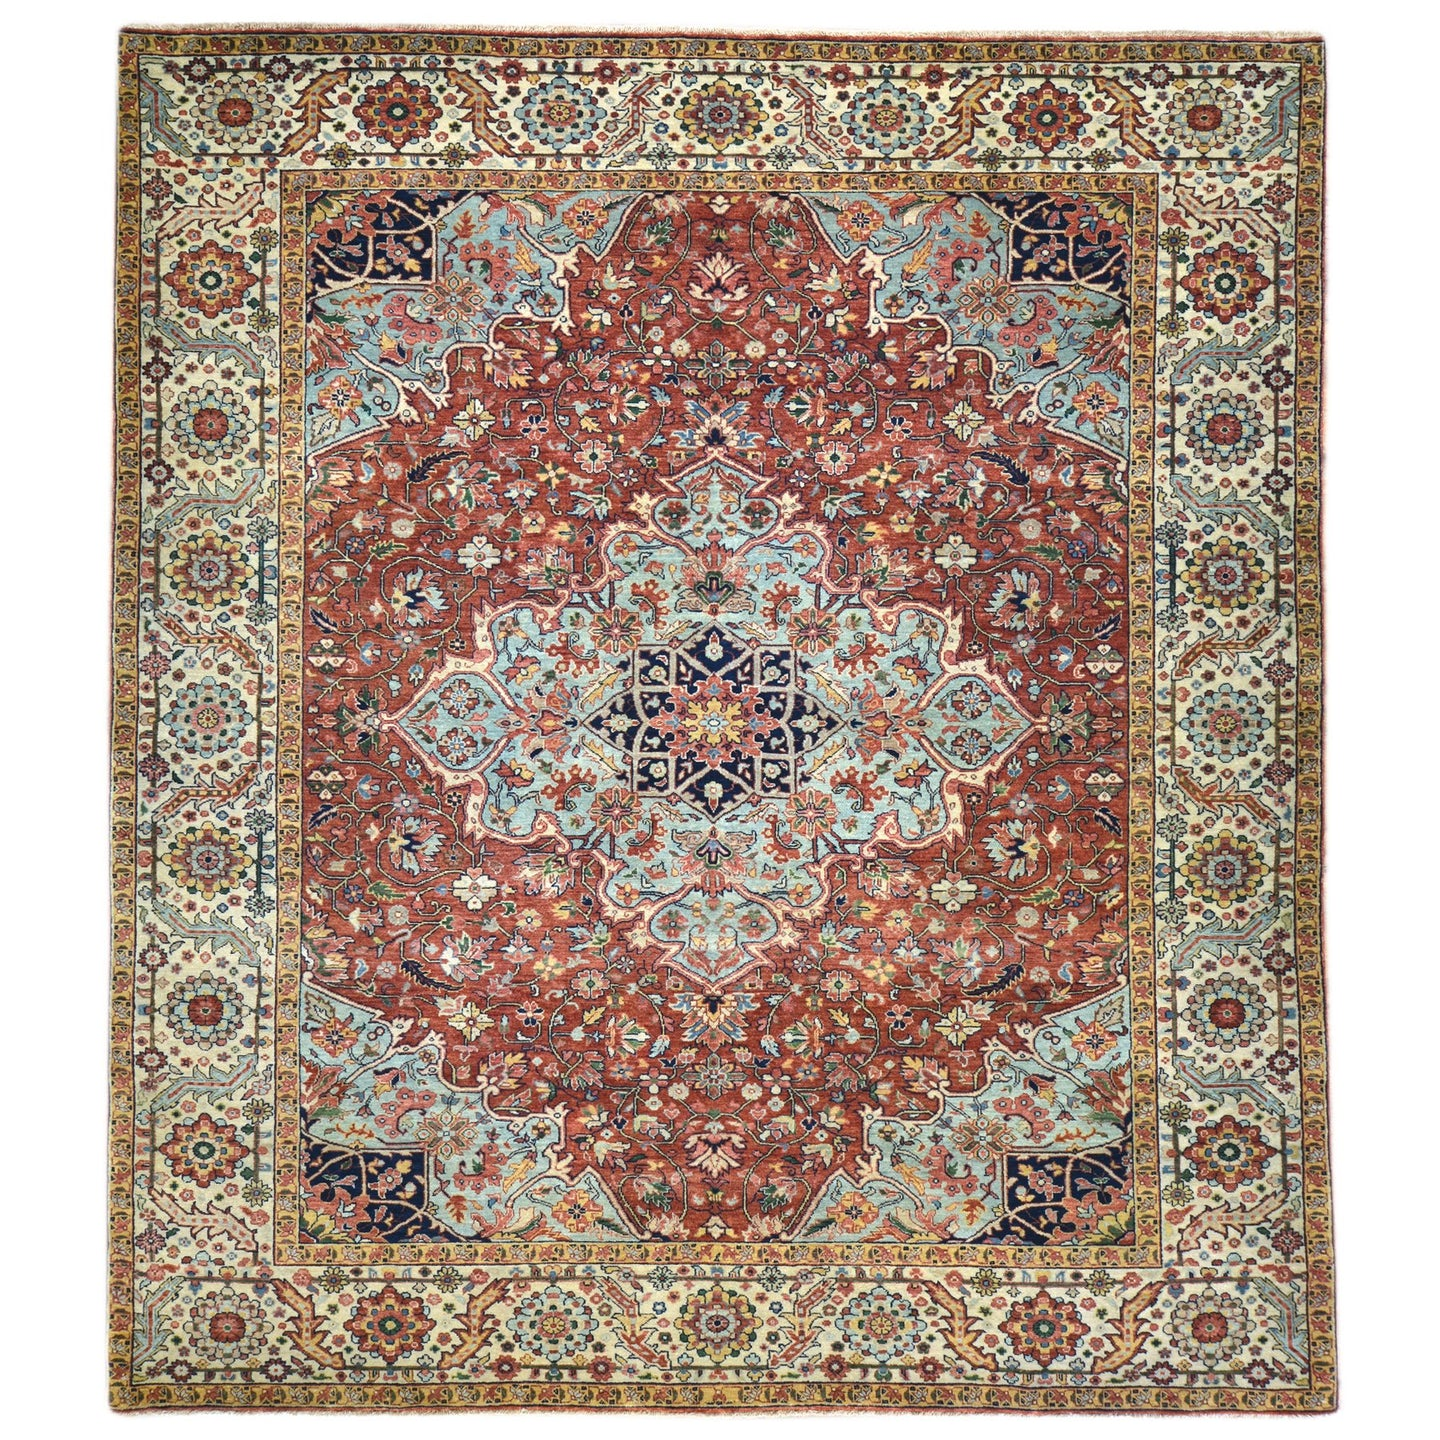 Oriental rugs, hand-knotted carpets, sustainable rugs, classic world oriental rugs, handmade, United States, interior design,  Brral-6321